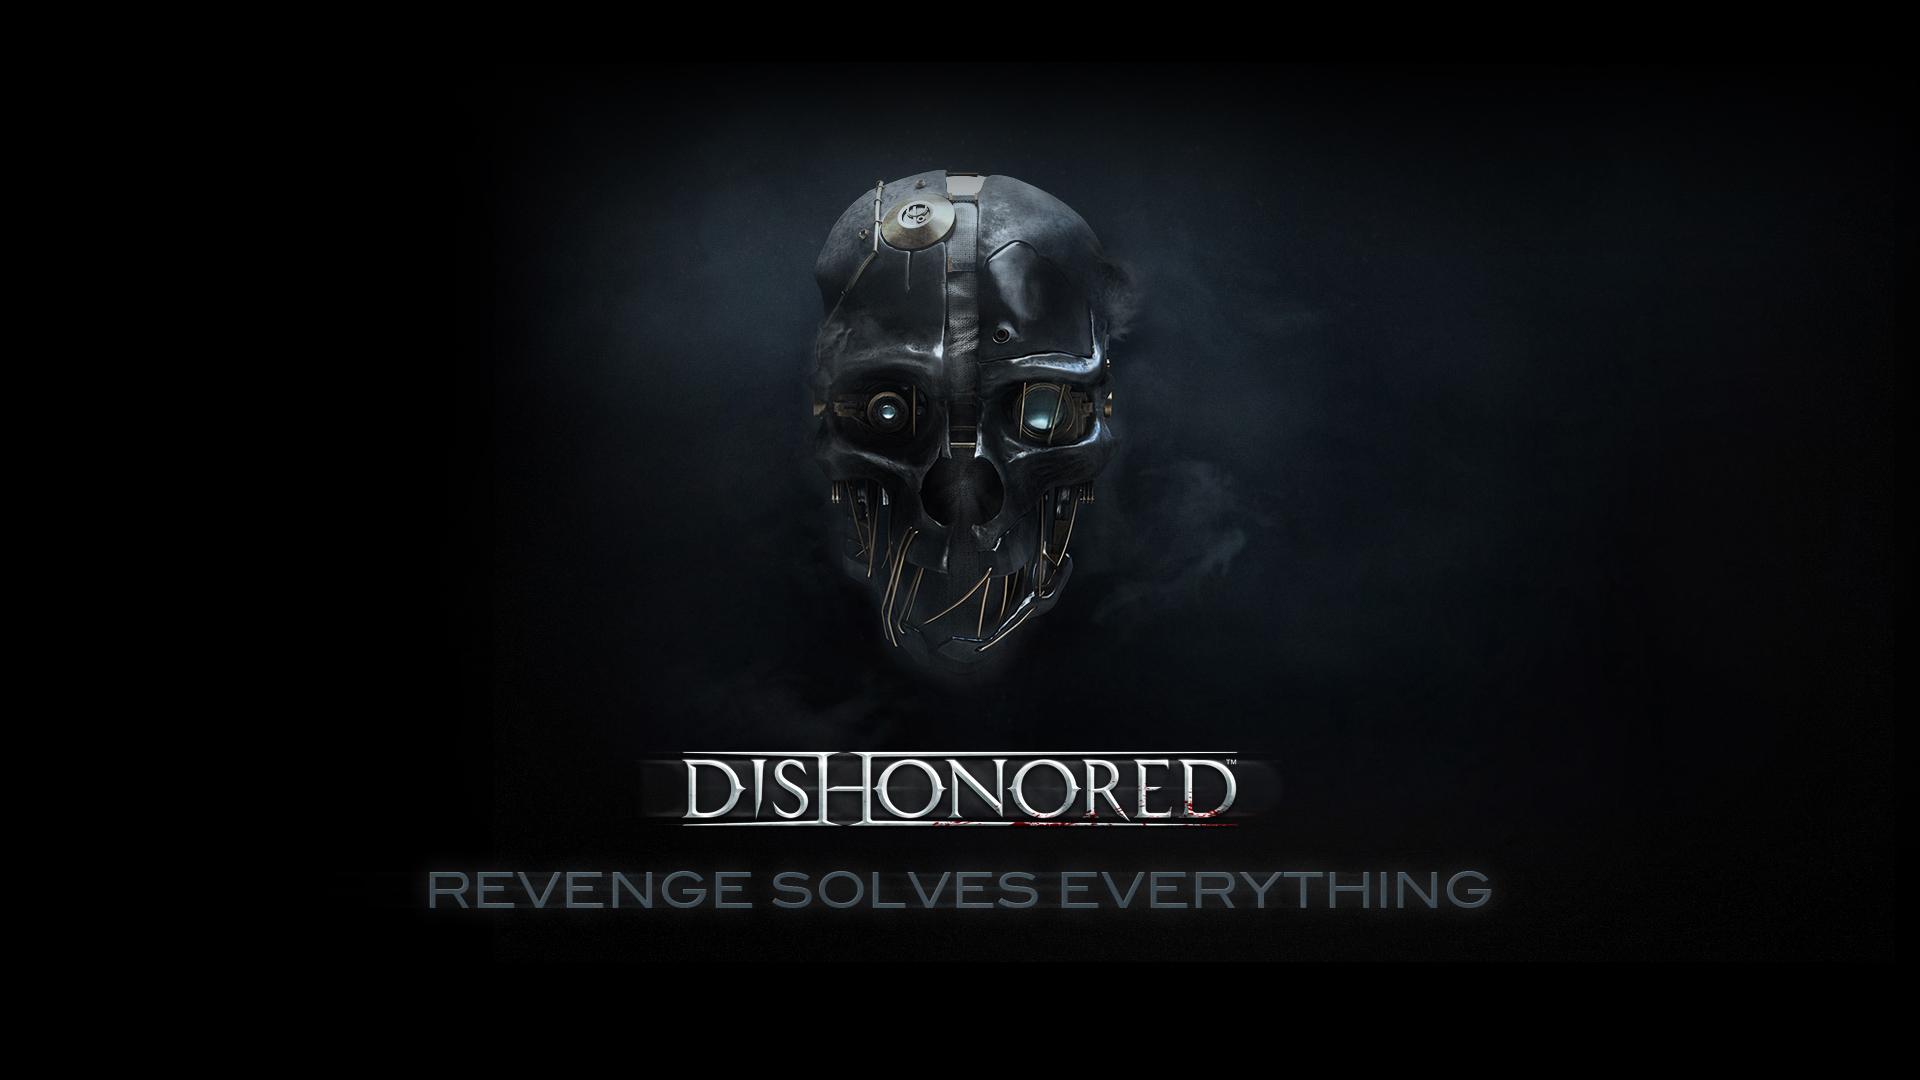 dishonored computer wallpapers desktop backgrounds